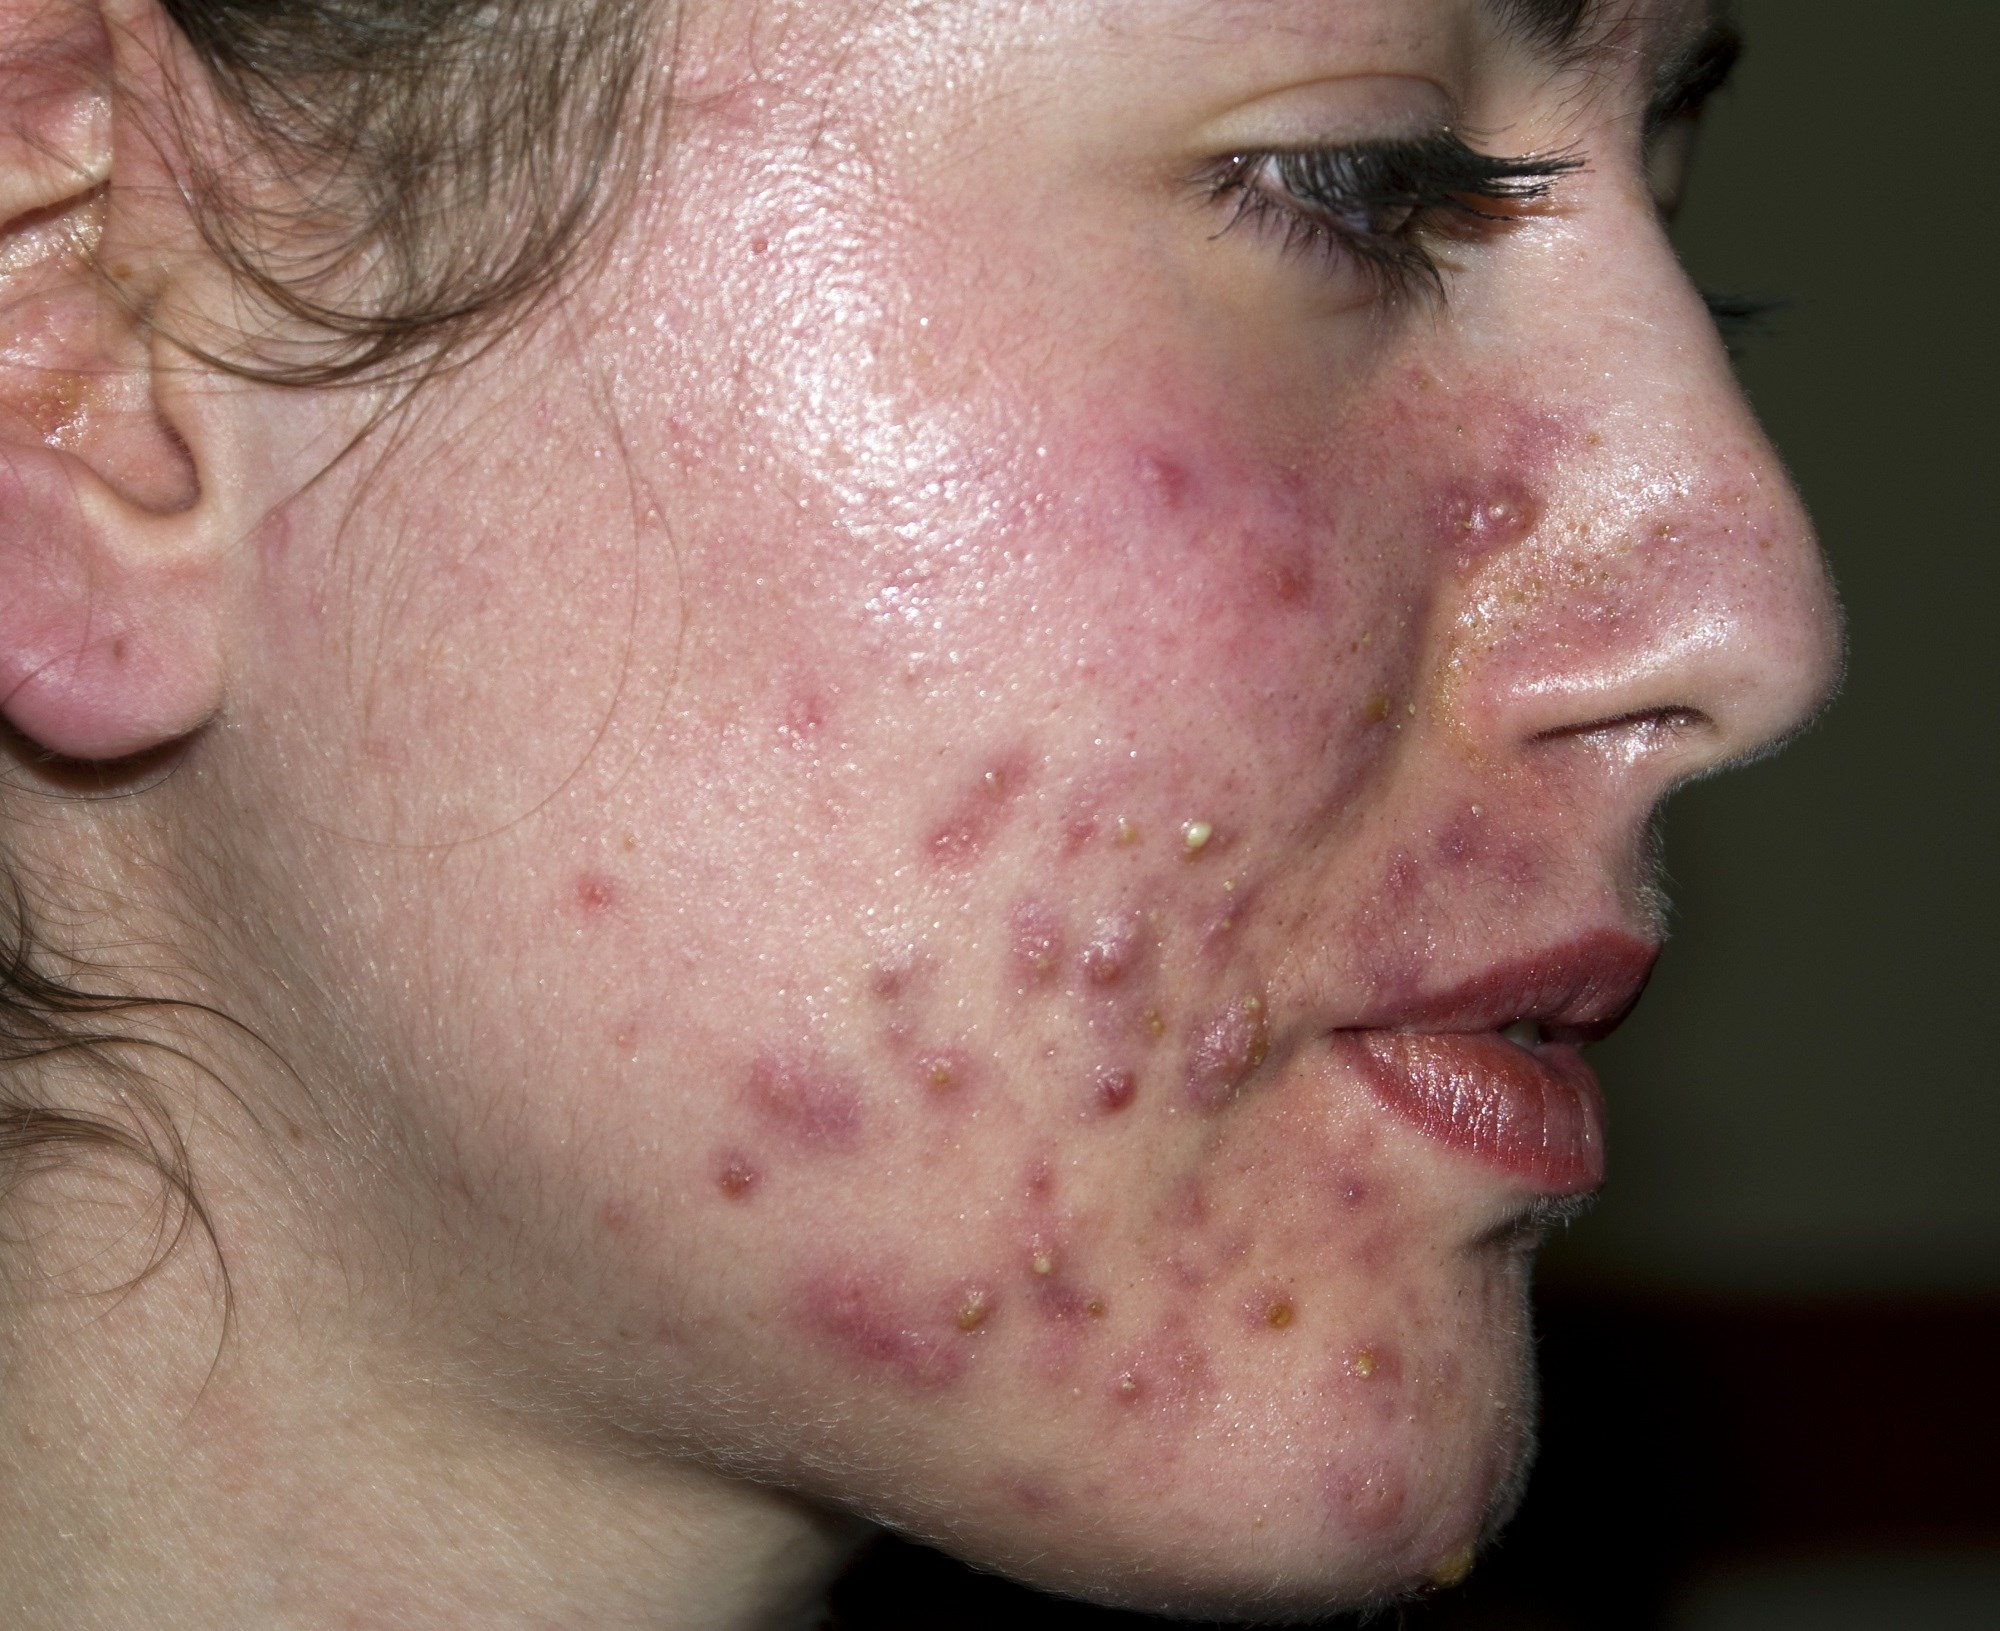 Once-Daily 7.5% Dapsone Gel Safe, Effective for Acne Vulgaris